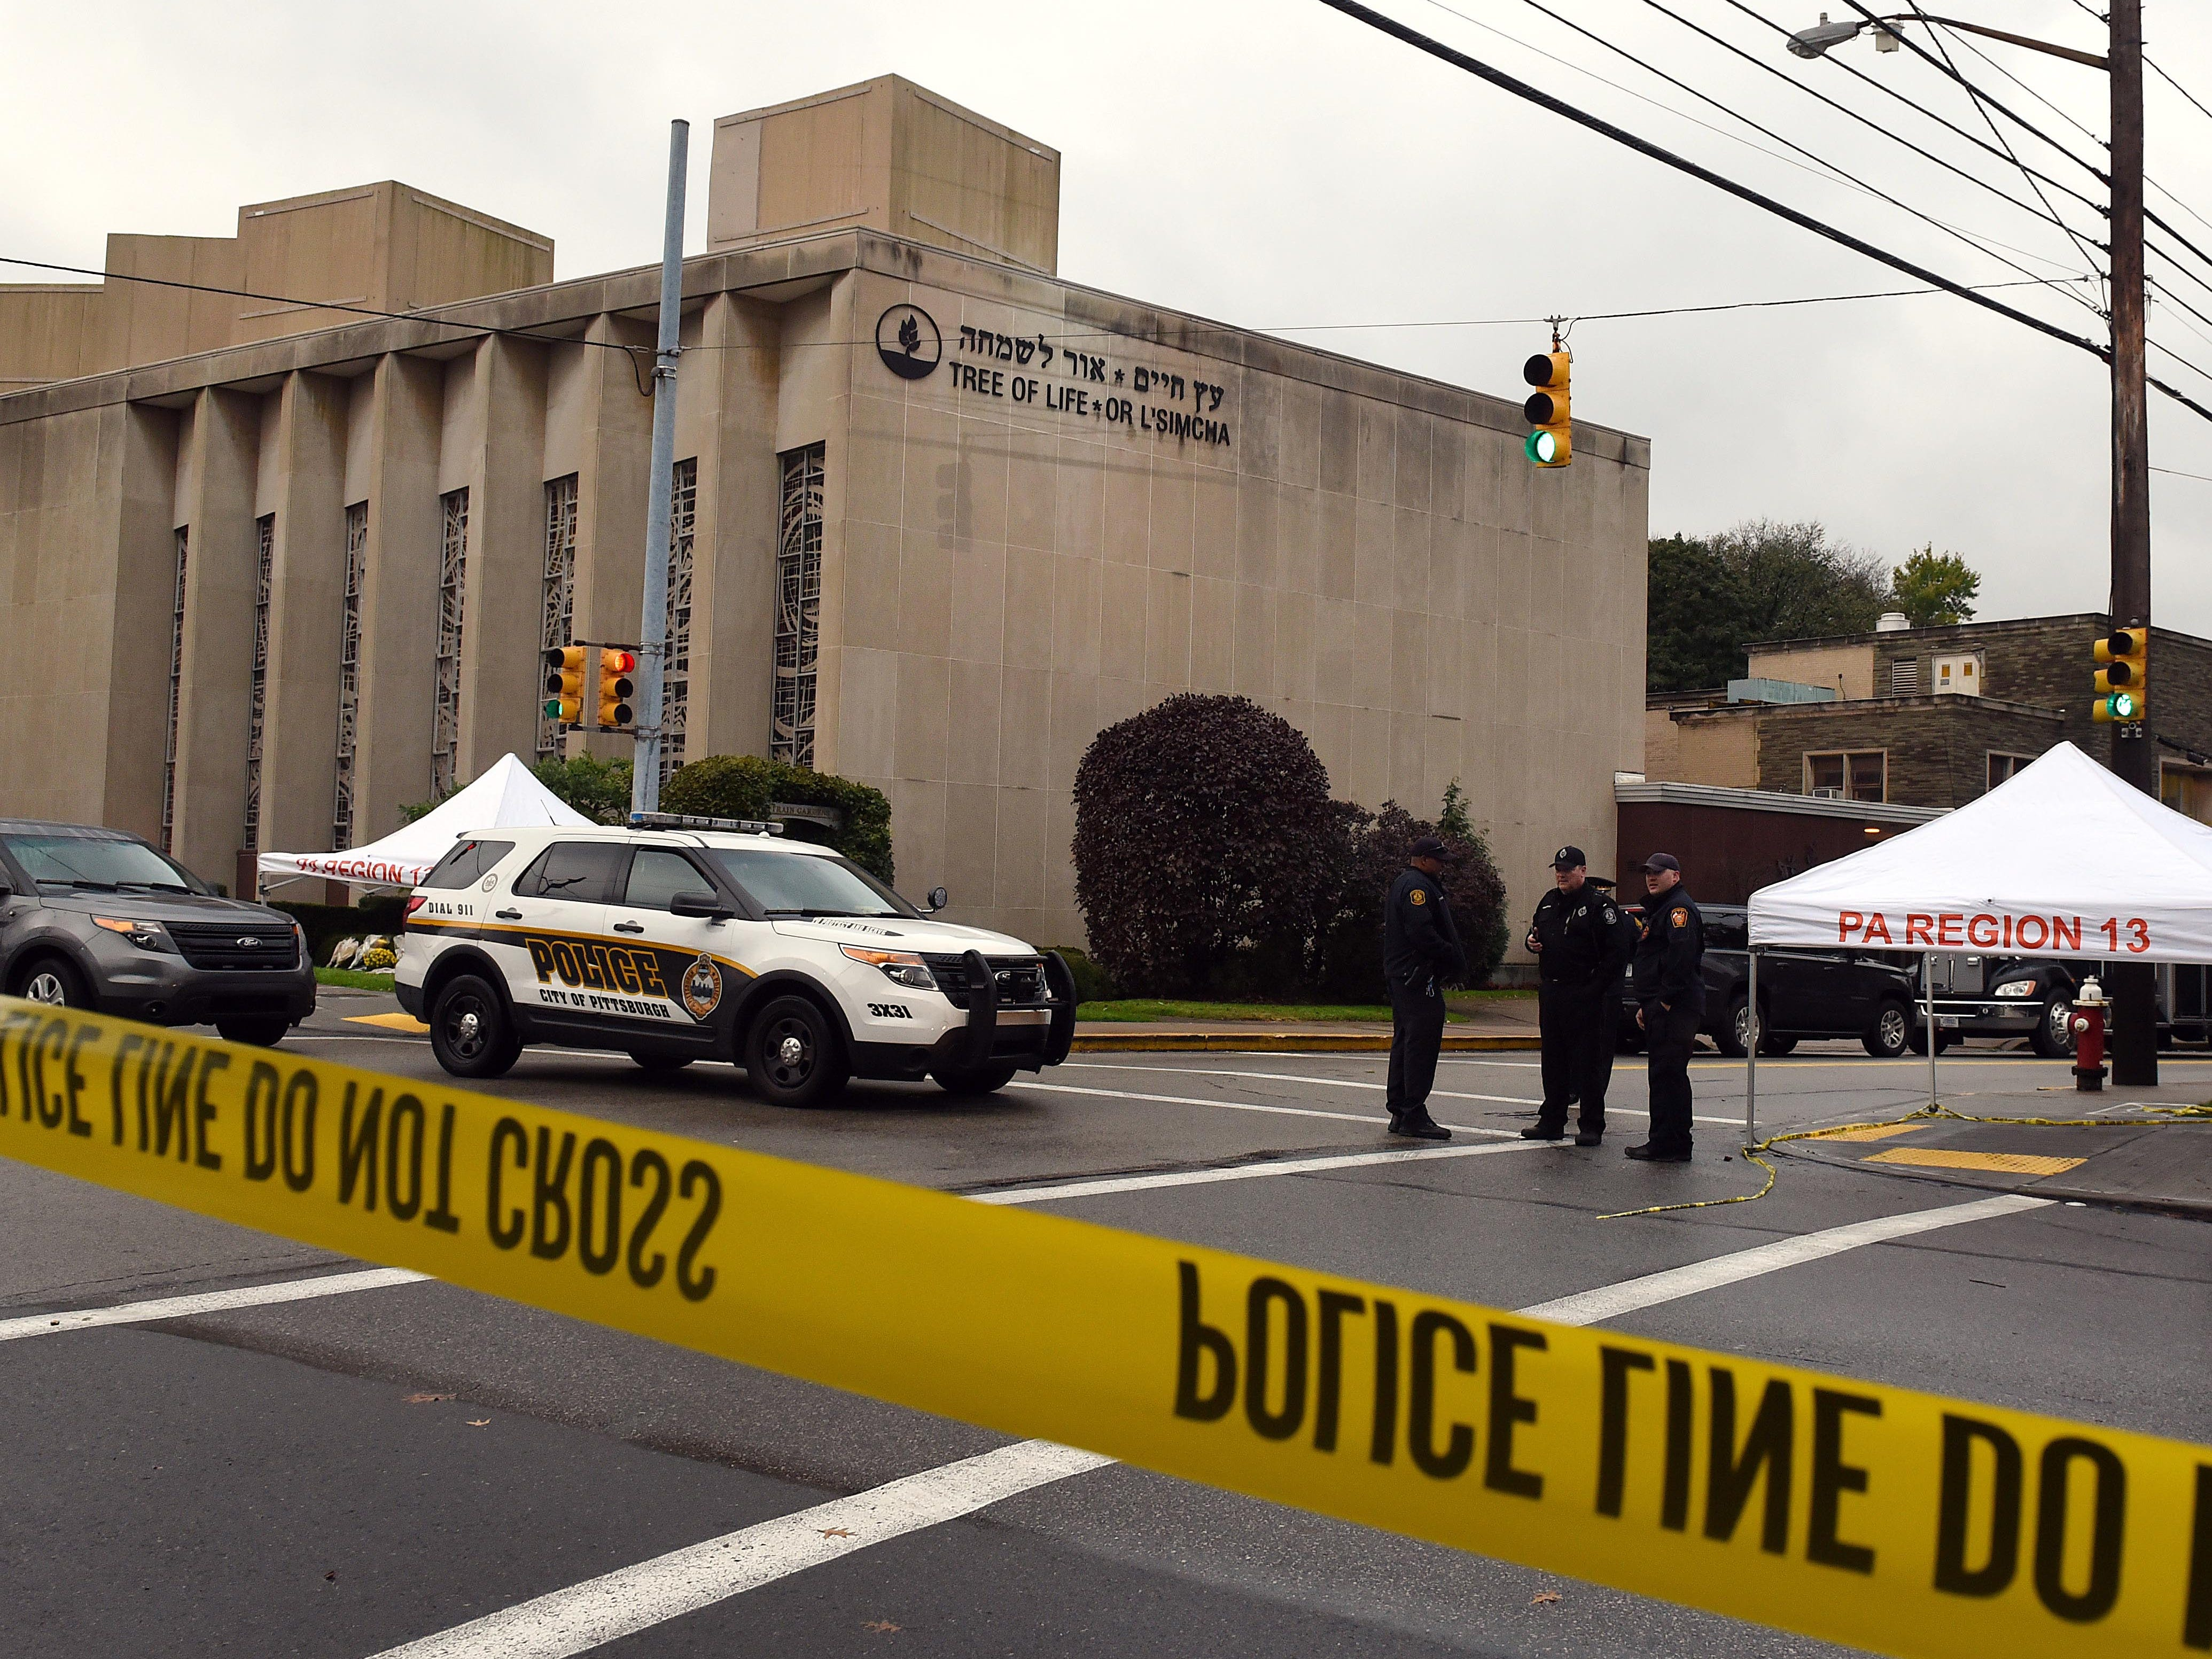 Gab, the social network used by accused Pittsburgh synagogue shooter, goes offline